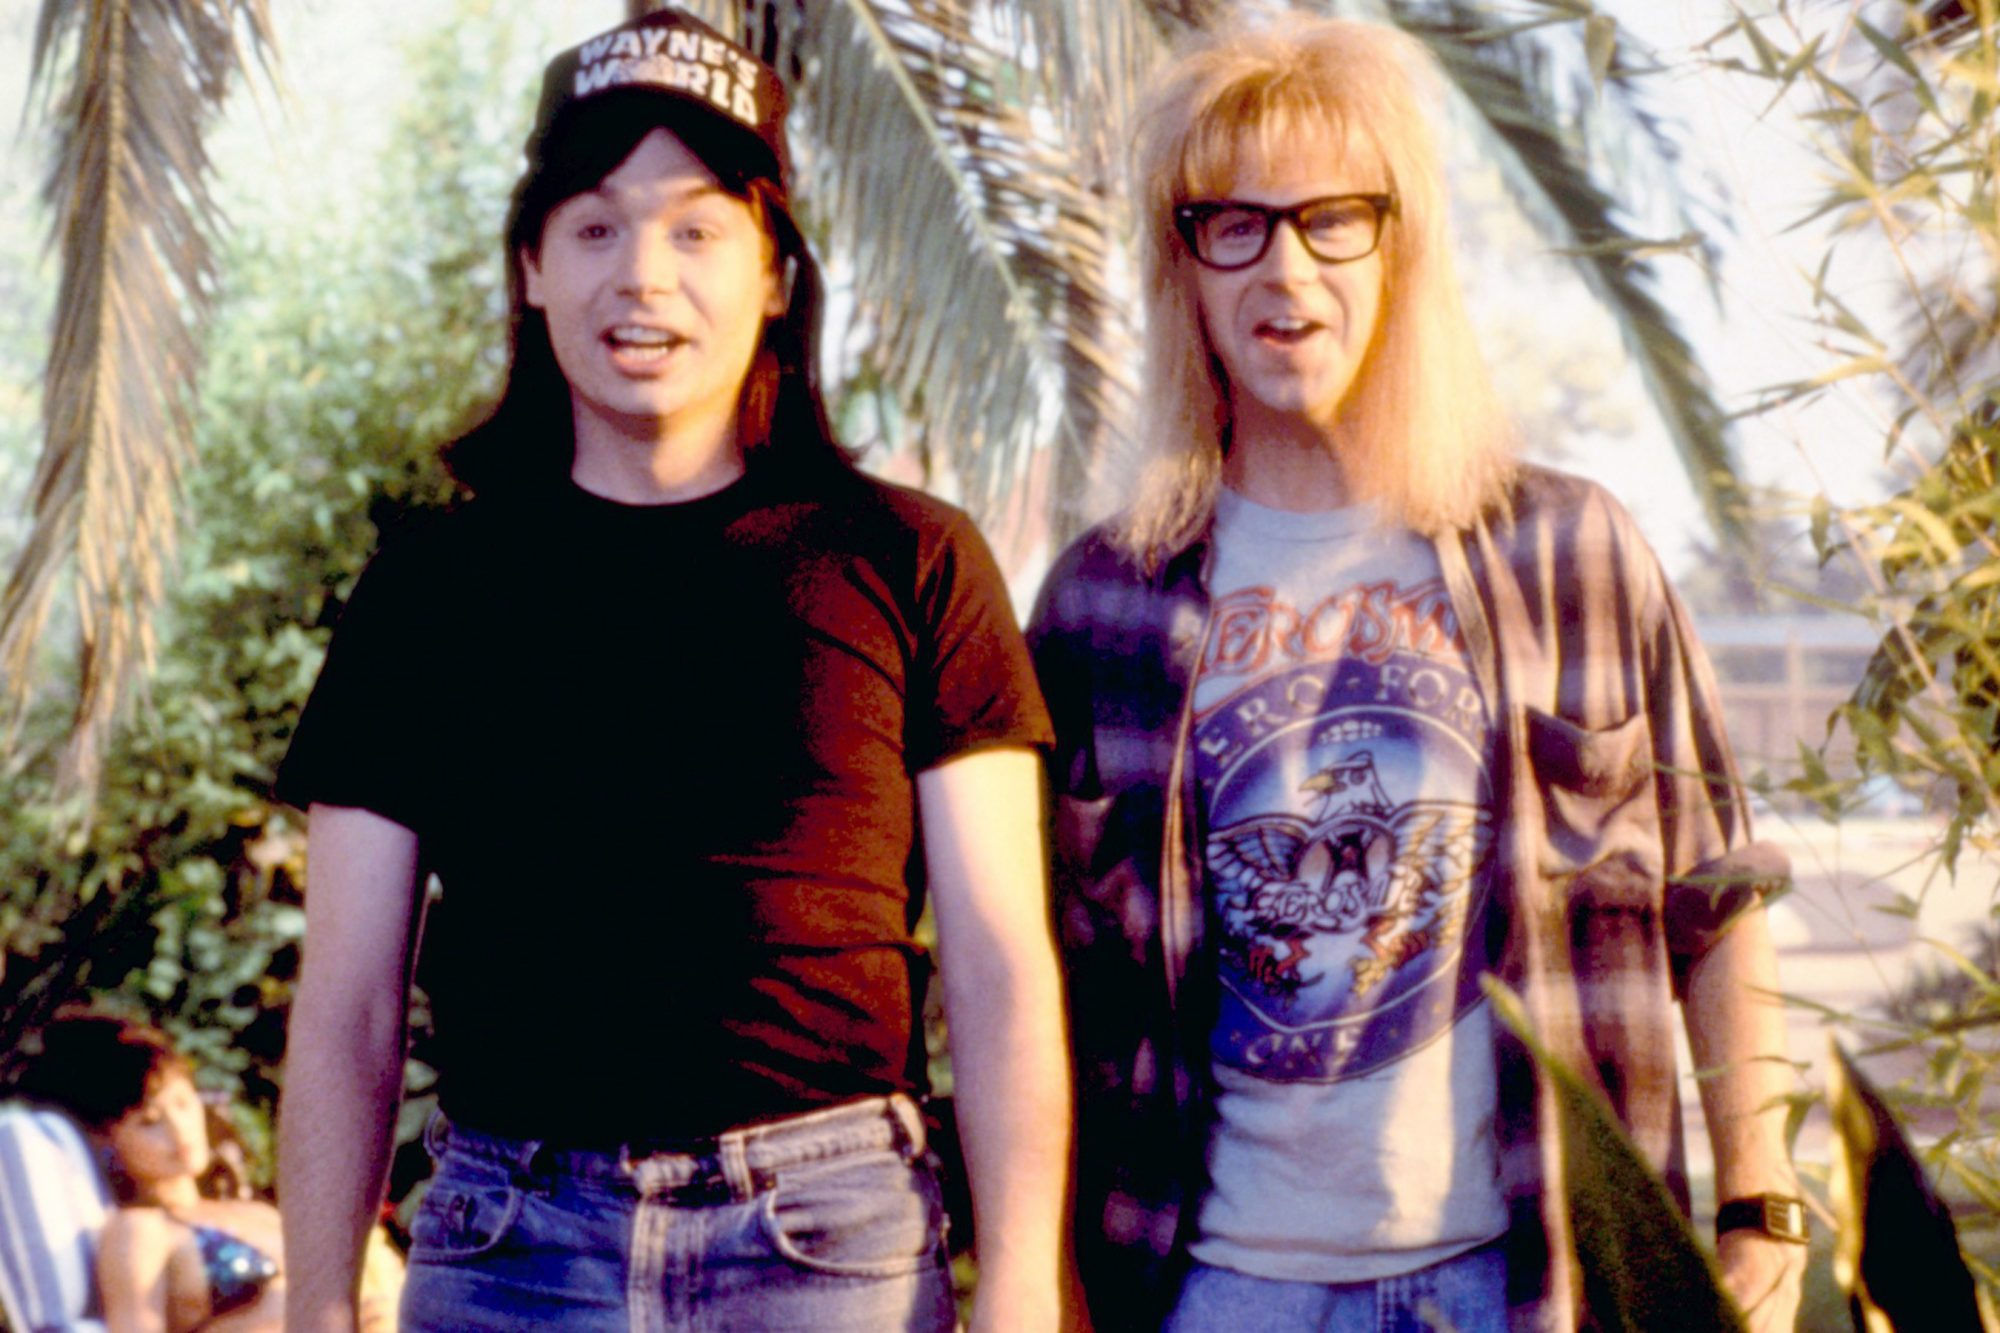 WAYNE'S WORLD, Mike Myers, Dana Carvey, 1992. ©Paramount/courtesy Everett Collection